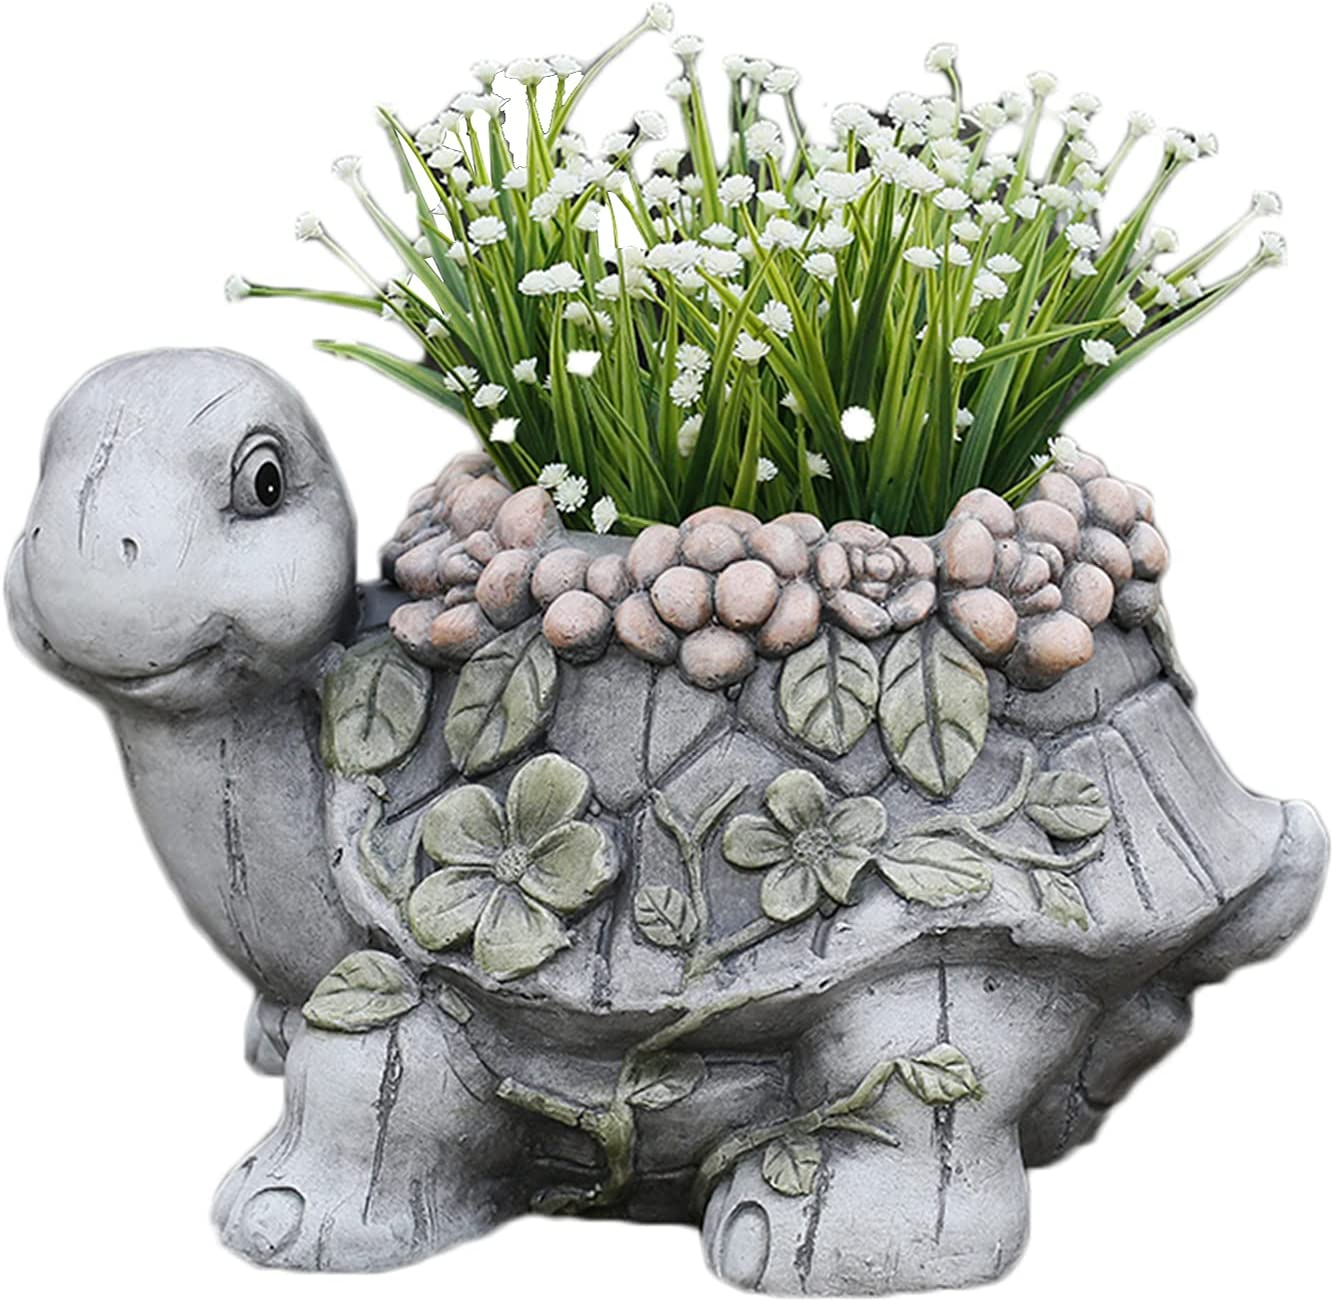 OFFicial shop MEIHOME Cement Planter Pot Raleigh Mall with Animal Sh Cartoon Drainage Hole